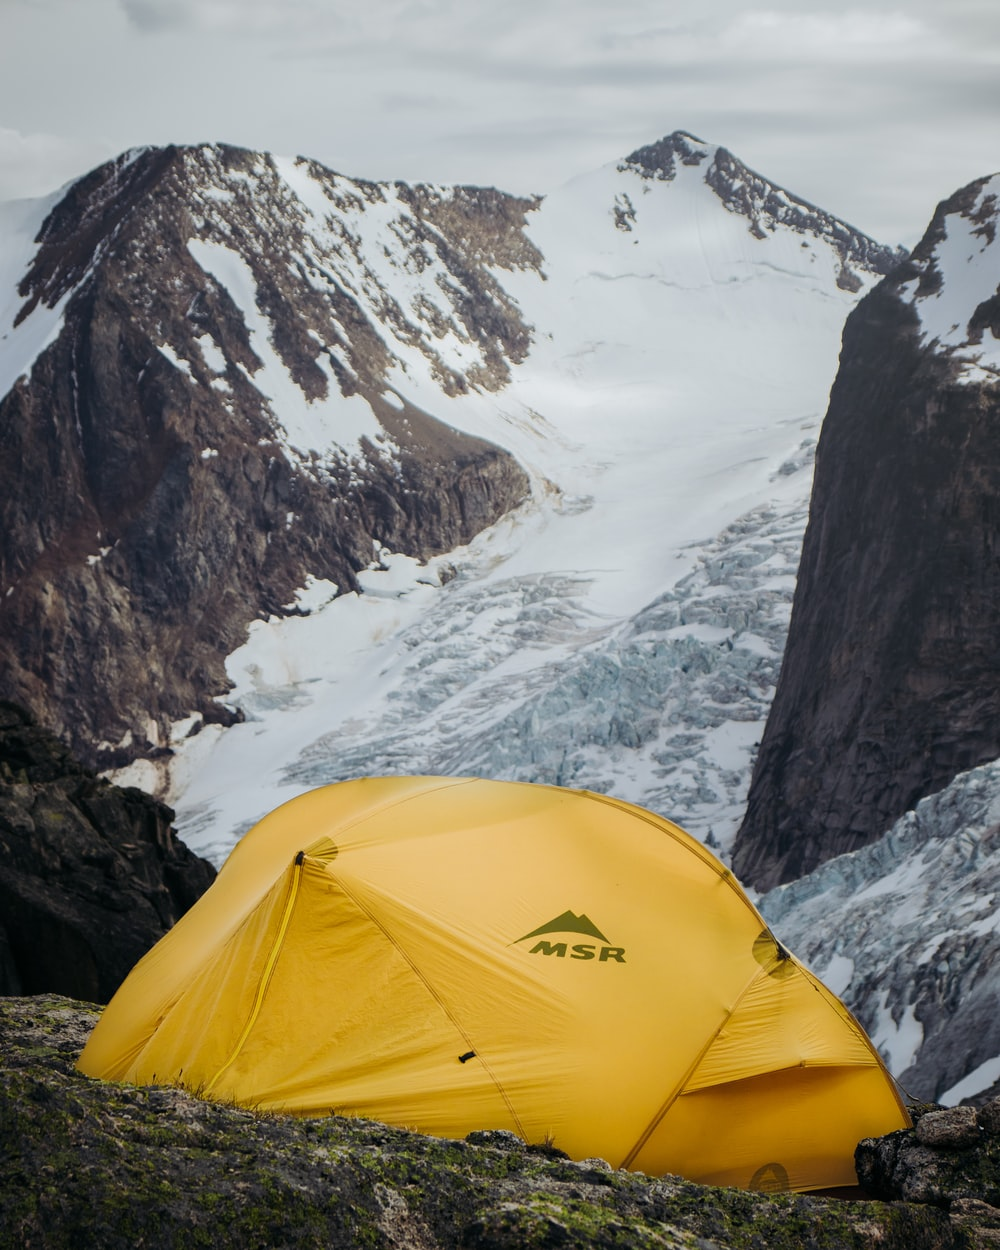 yellow camping tent near mountains during daytime